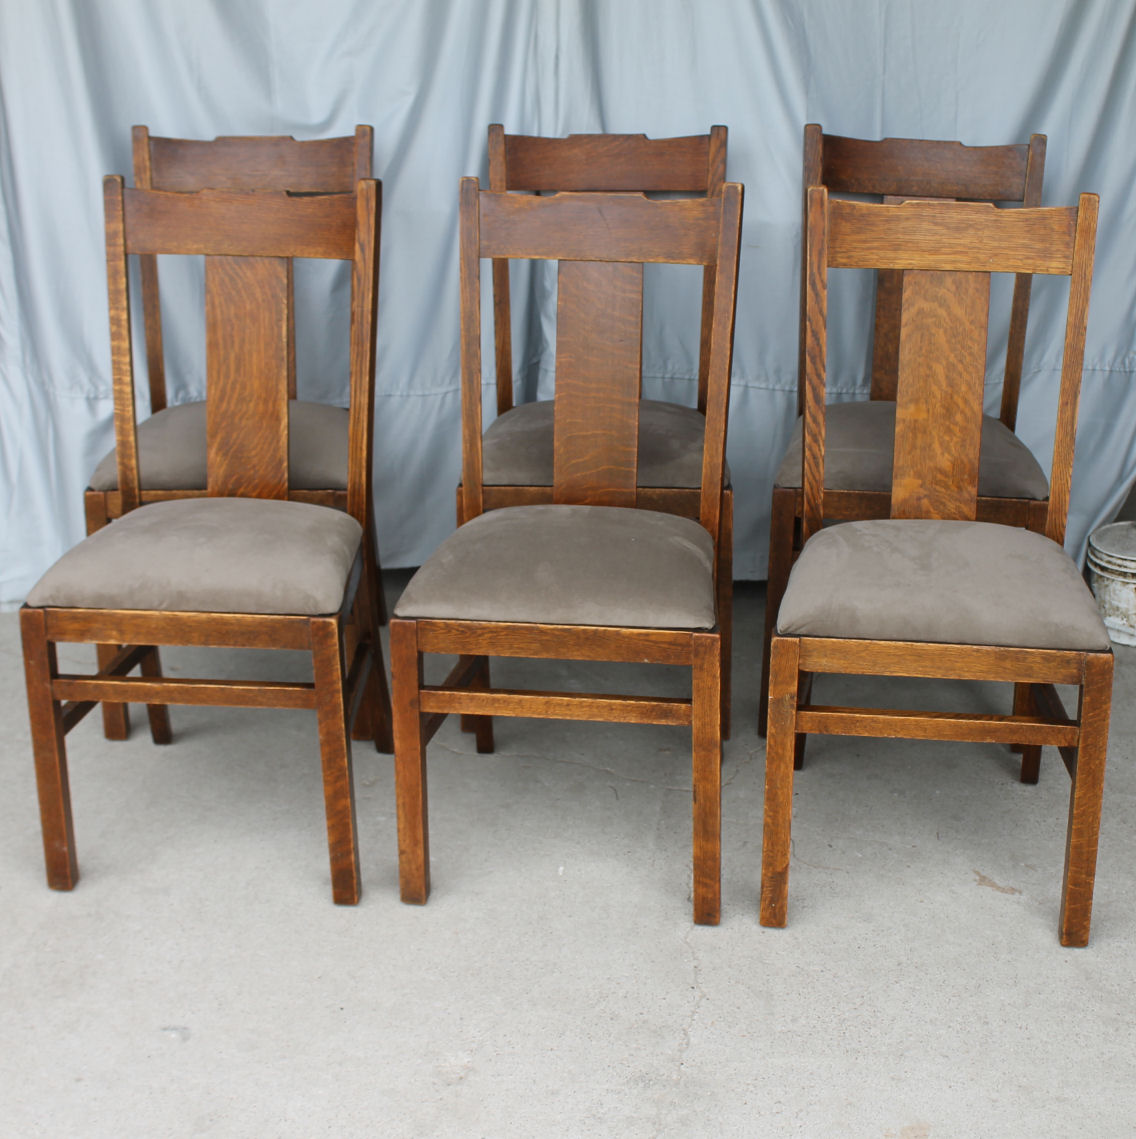 Mission Style Recliner Chair Bargain John 39s Antiques Antique Set Of Six Oak Mission